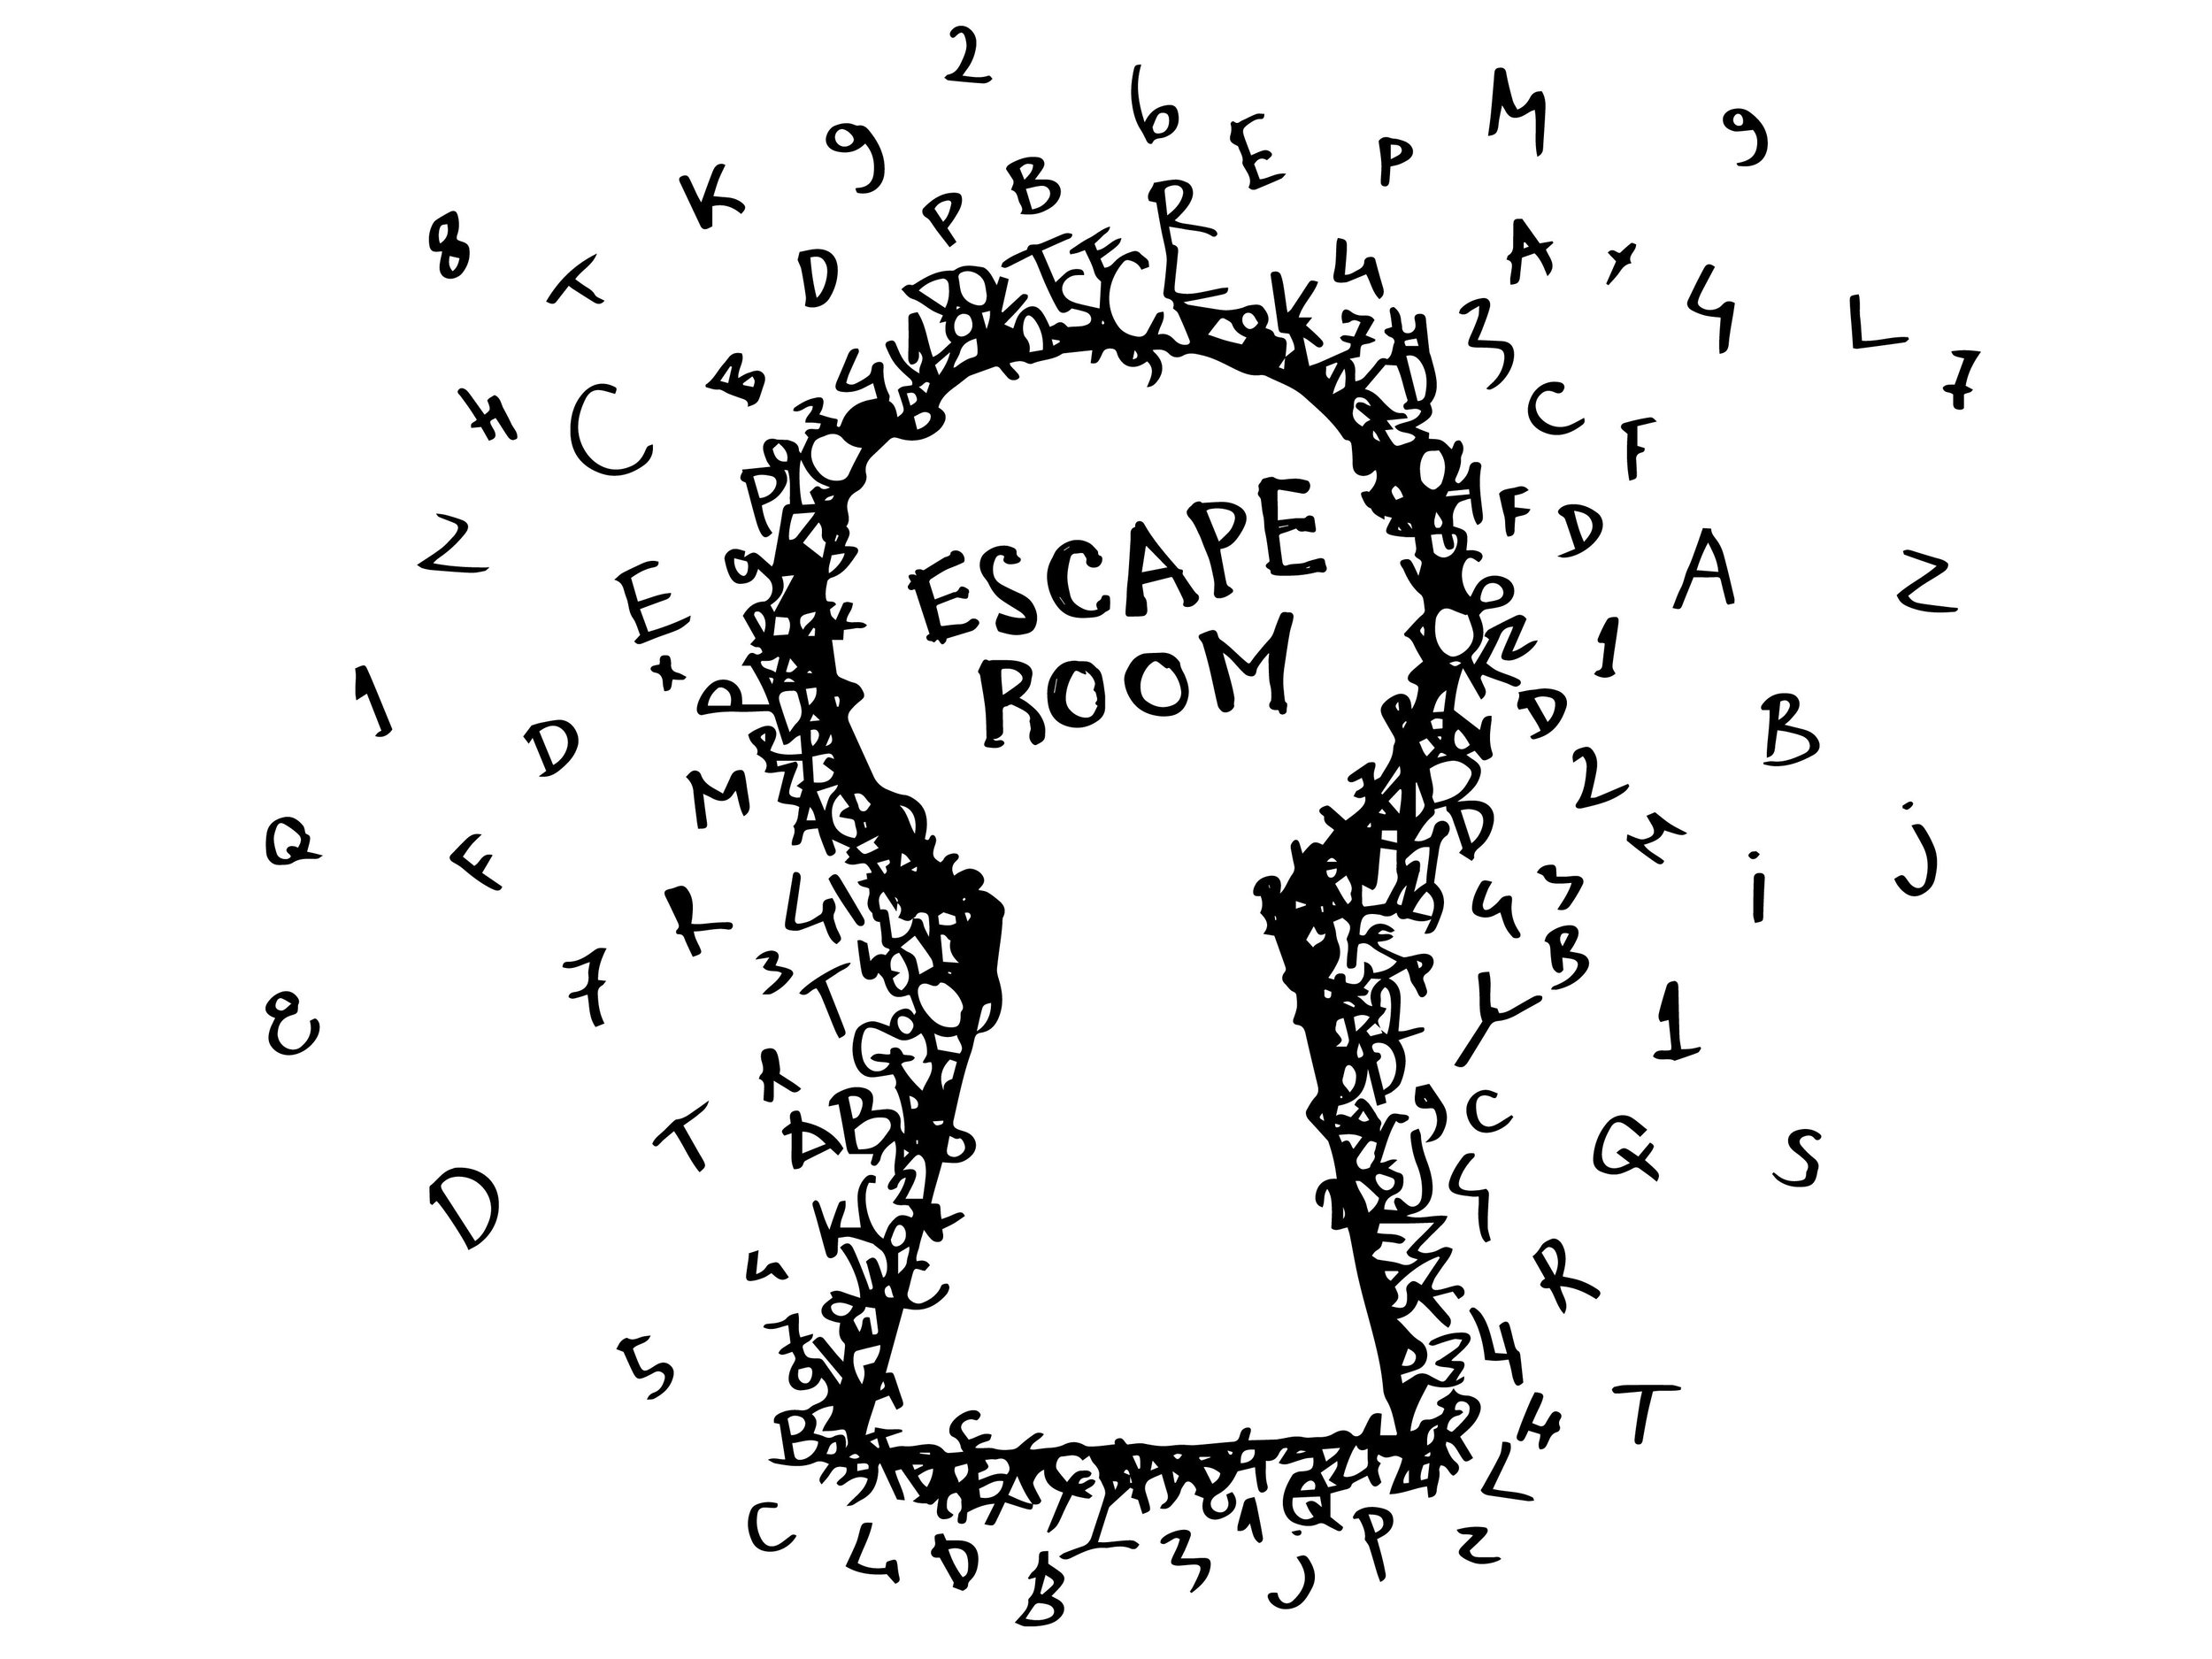 Escape Rooms can be found across the globe... - Escape Rooms are modeled after a type of computer game in which the player is locked inside a room and must explore in order to find their way out. The very first Escape Room was started in Silicon Valley by a group of system programmers. They concept quickly spread, with the first major company popping up in Japan in 2008. Today there are thousands of rooms around the globe.